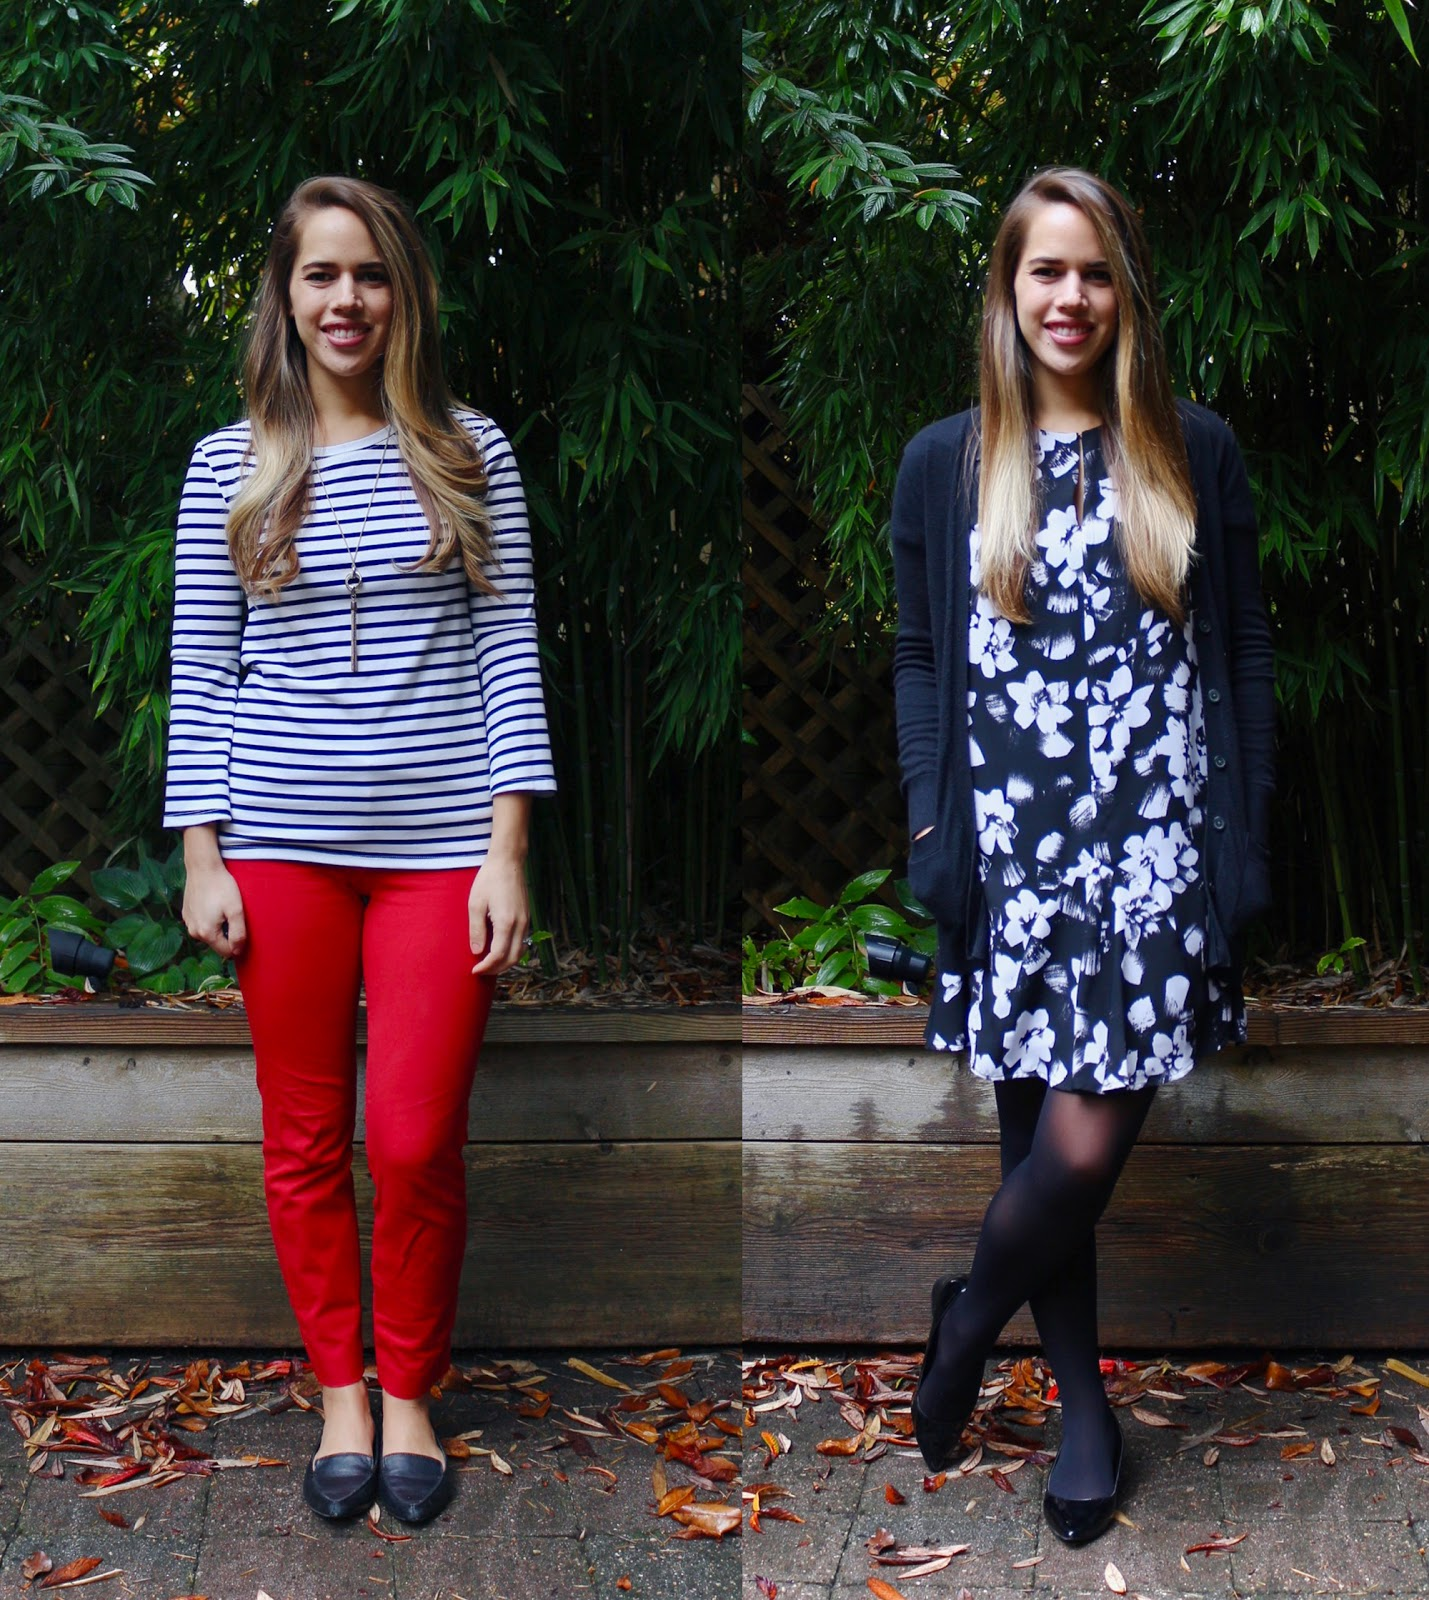 Jules in Flats - October Outfits (Business Casual Fall Workwear on a Budget)